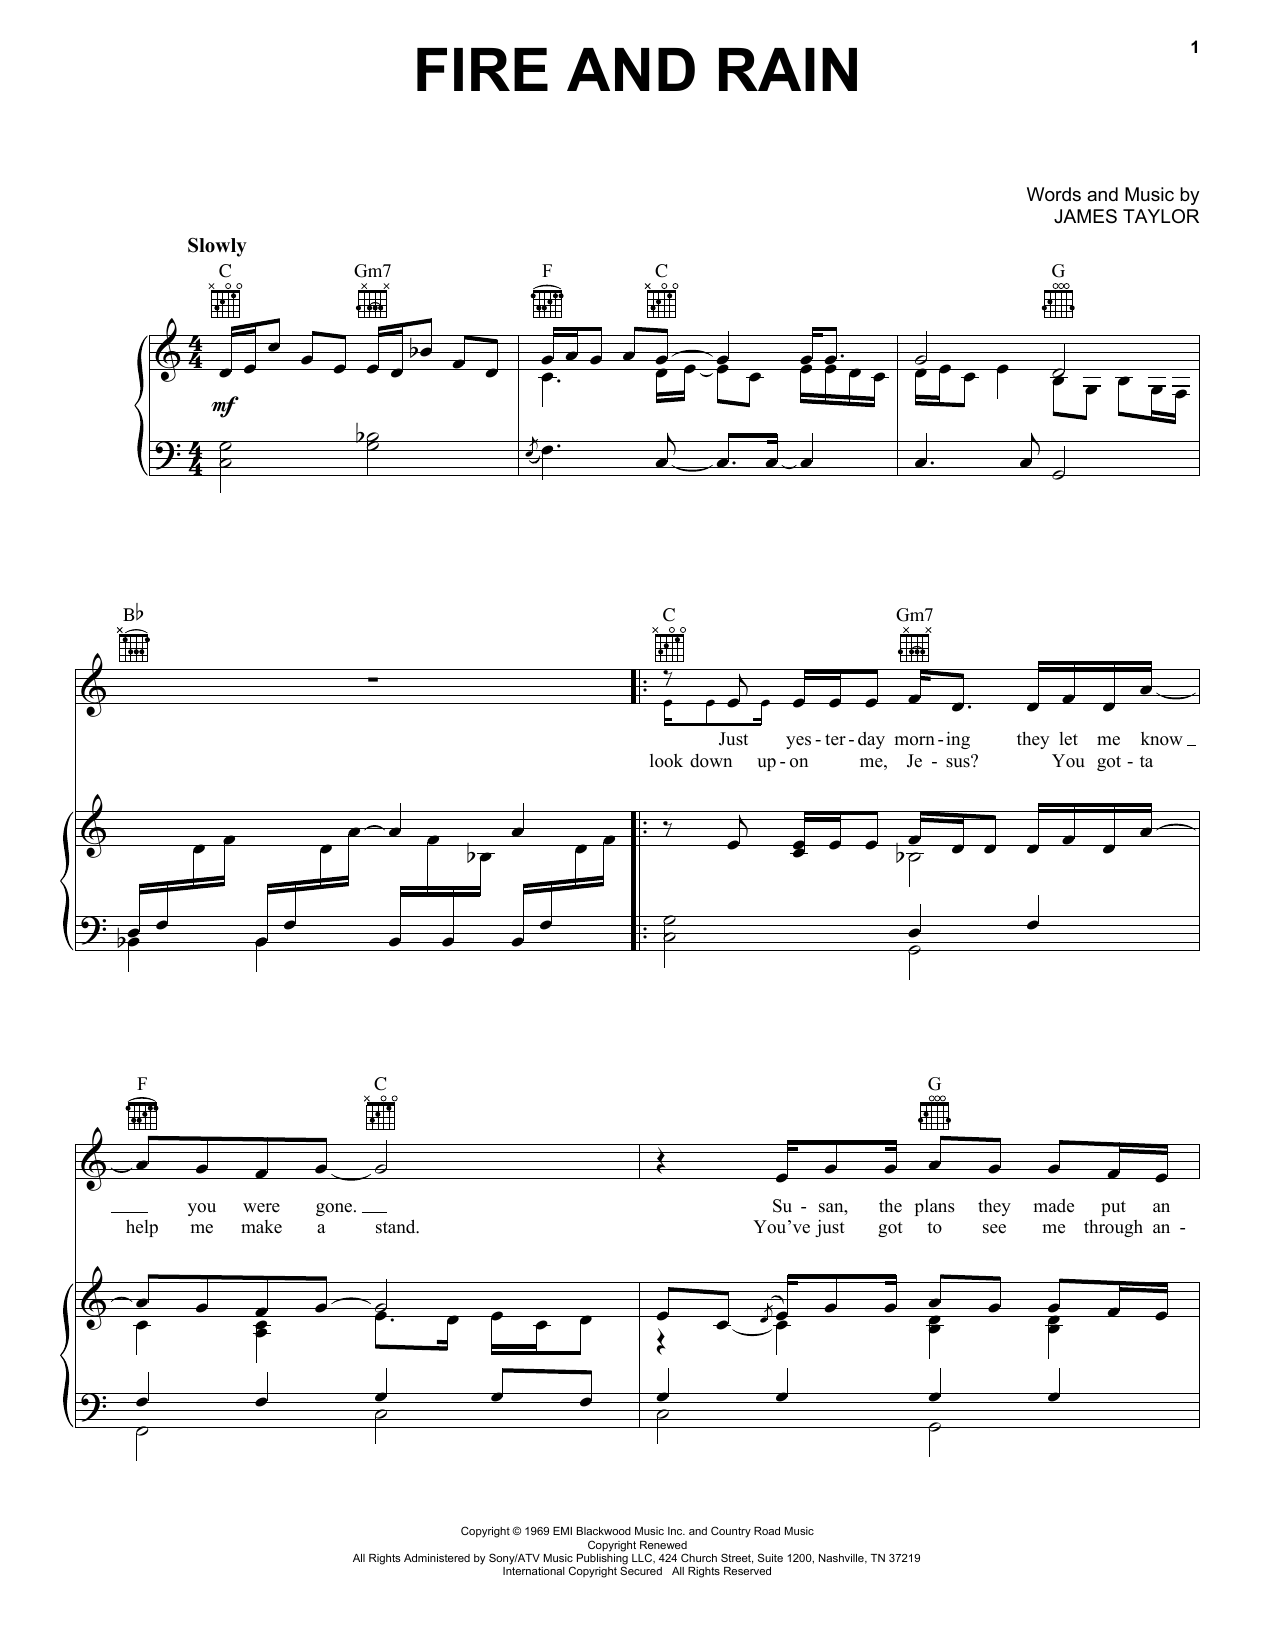 James Taylor Fire And Rain sheet music notes and chords. Download Printable PDF.